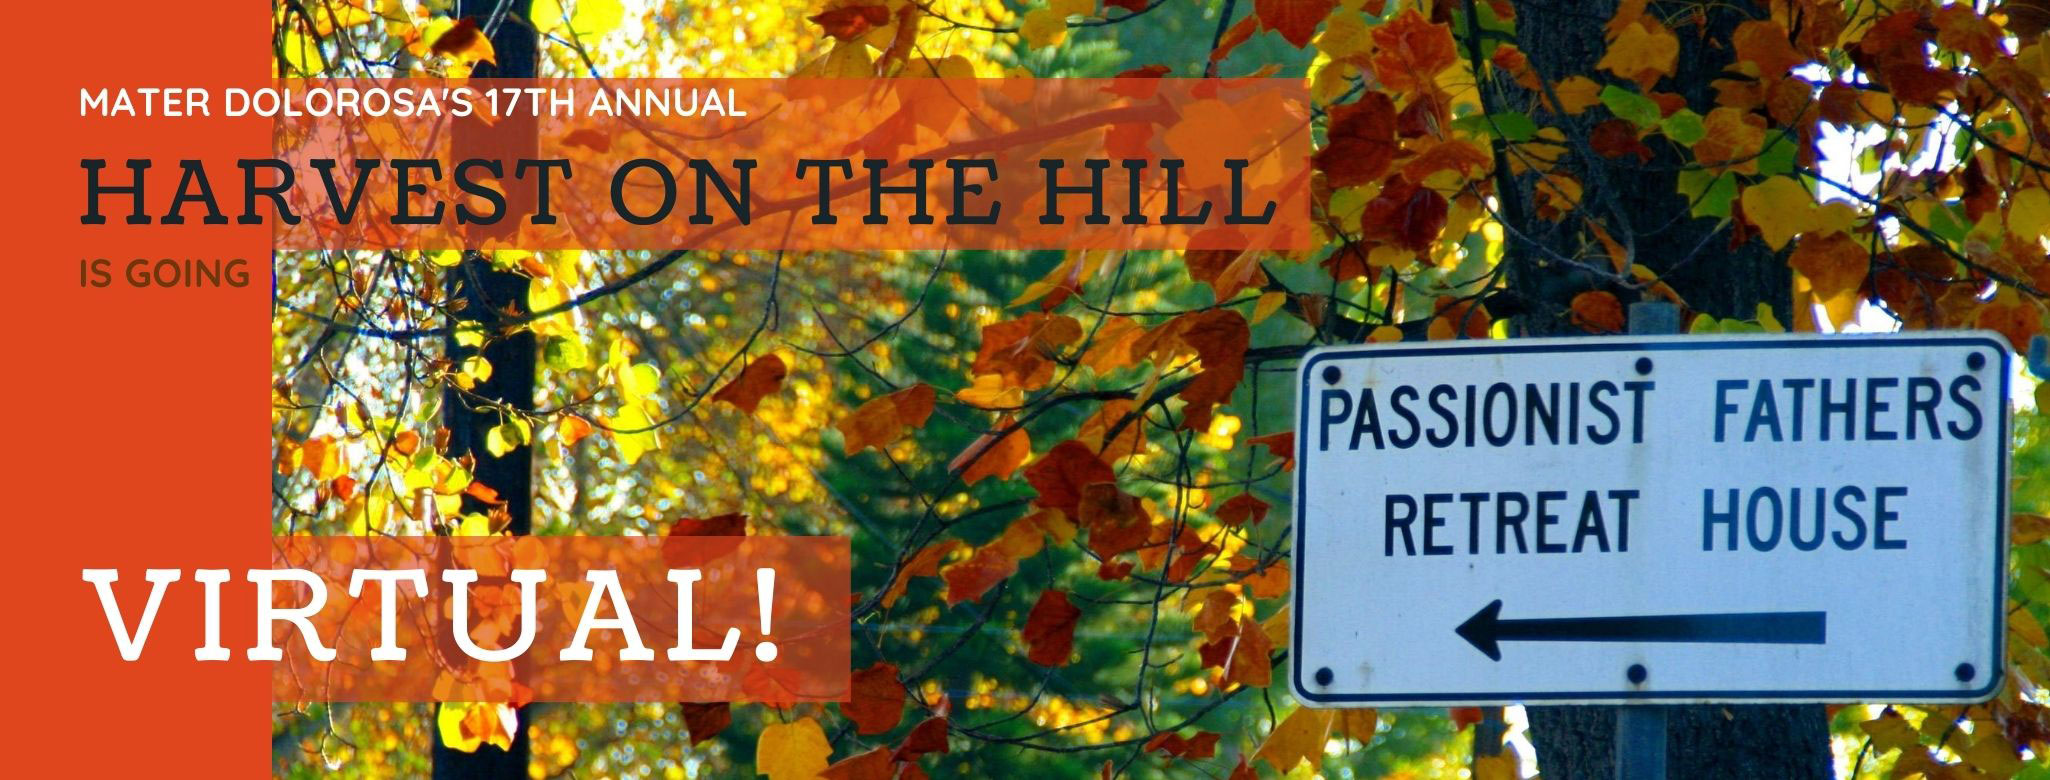 Harvest-on-the-Hill-is-Going-Virtual_Draft5